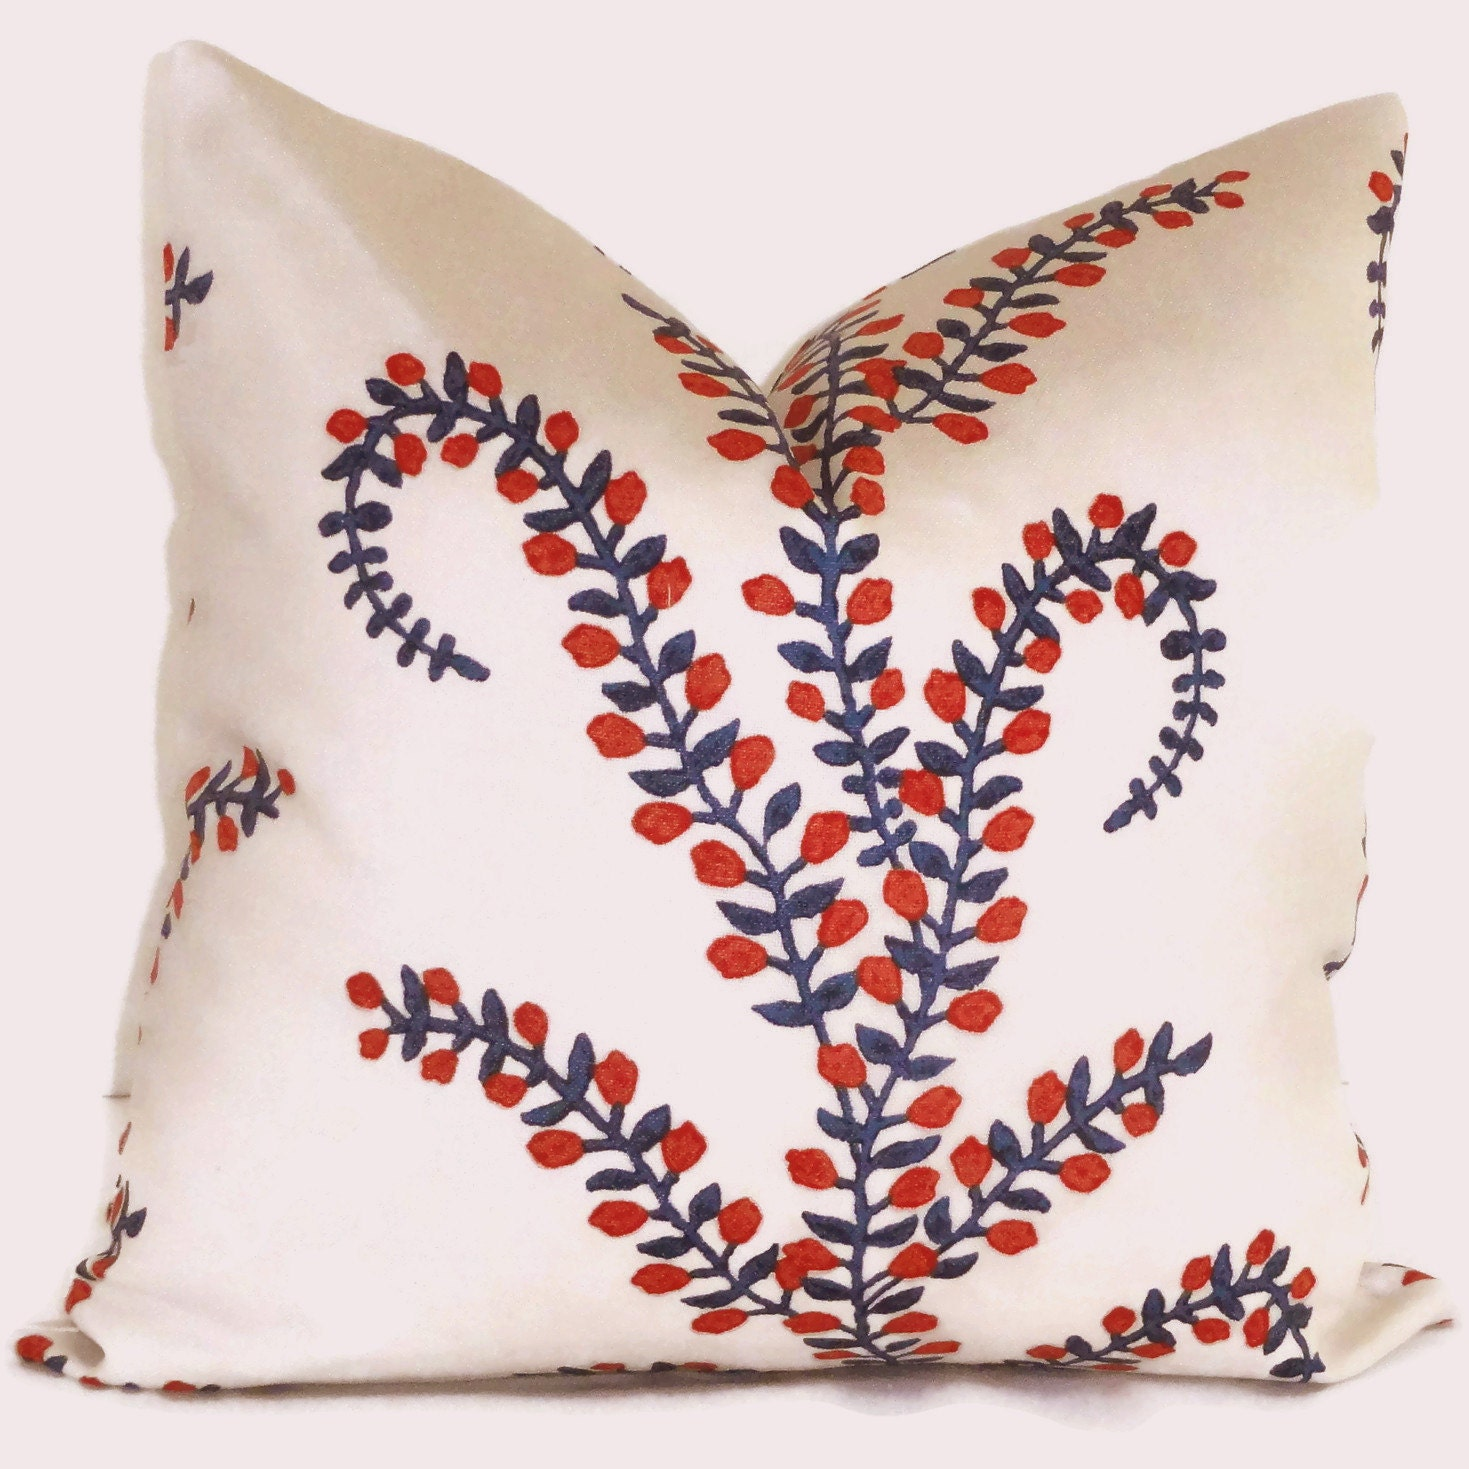 Decorative Pillows Robshaw : Red White Blue Prasana Decorative Pillow Cover Square or